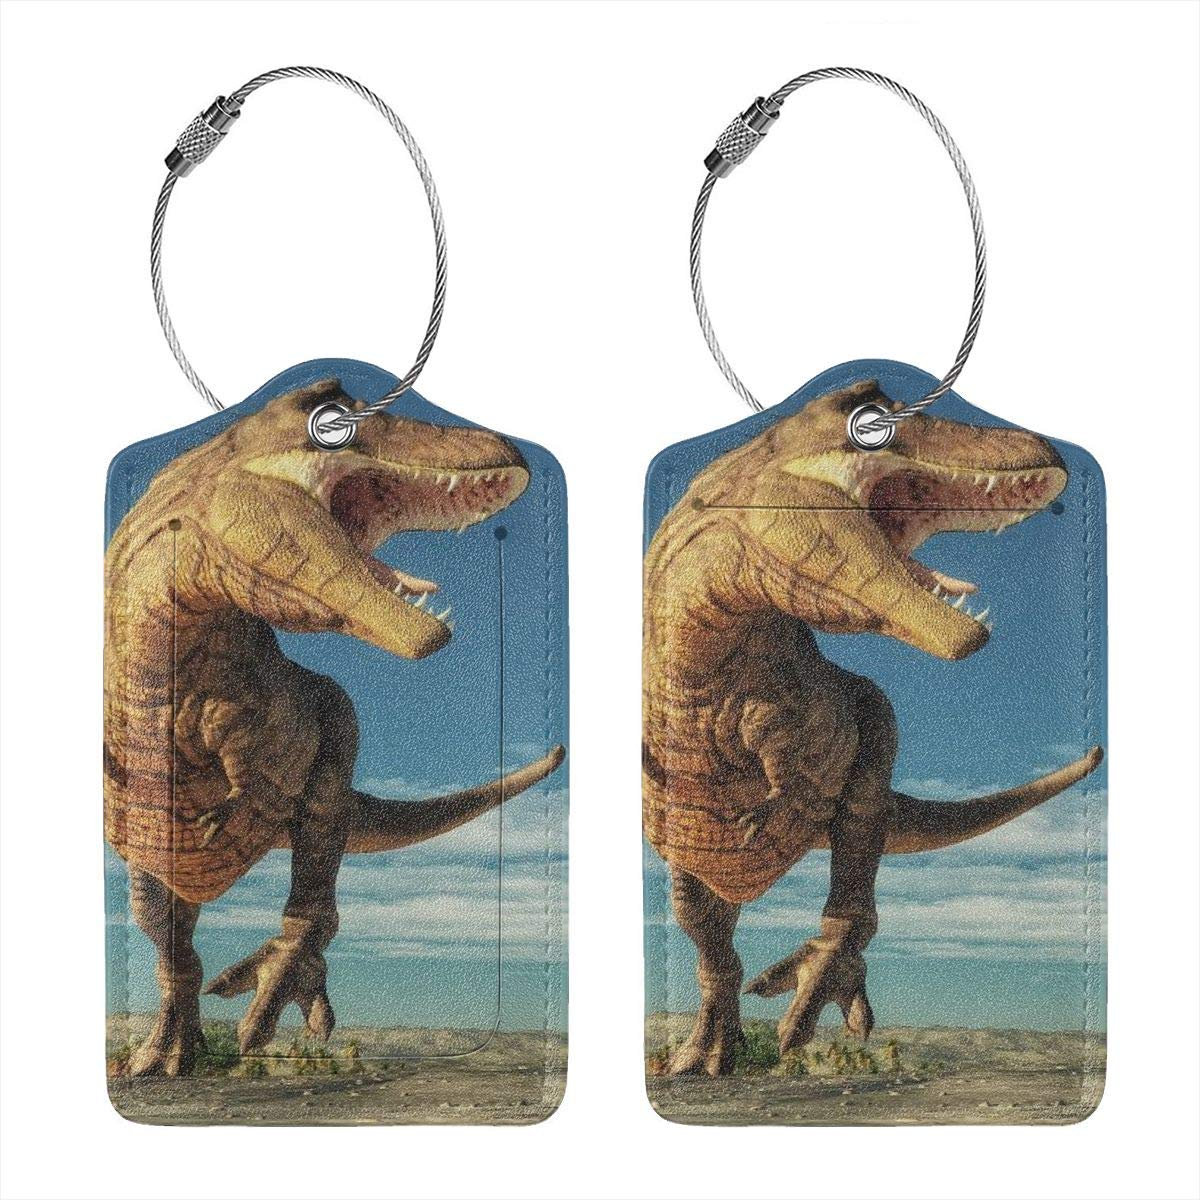 Godzigod Luggage Tags Leather Case Suitcase Label with Stainless Steel Loop Bag Baggage Tote Tags Travel Tags VDinosaurs Playing On The Jungle Palm Trees